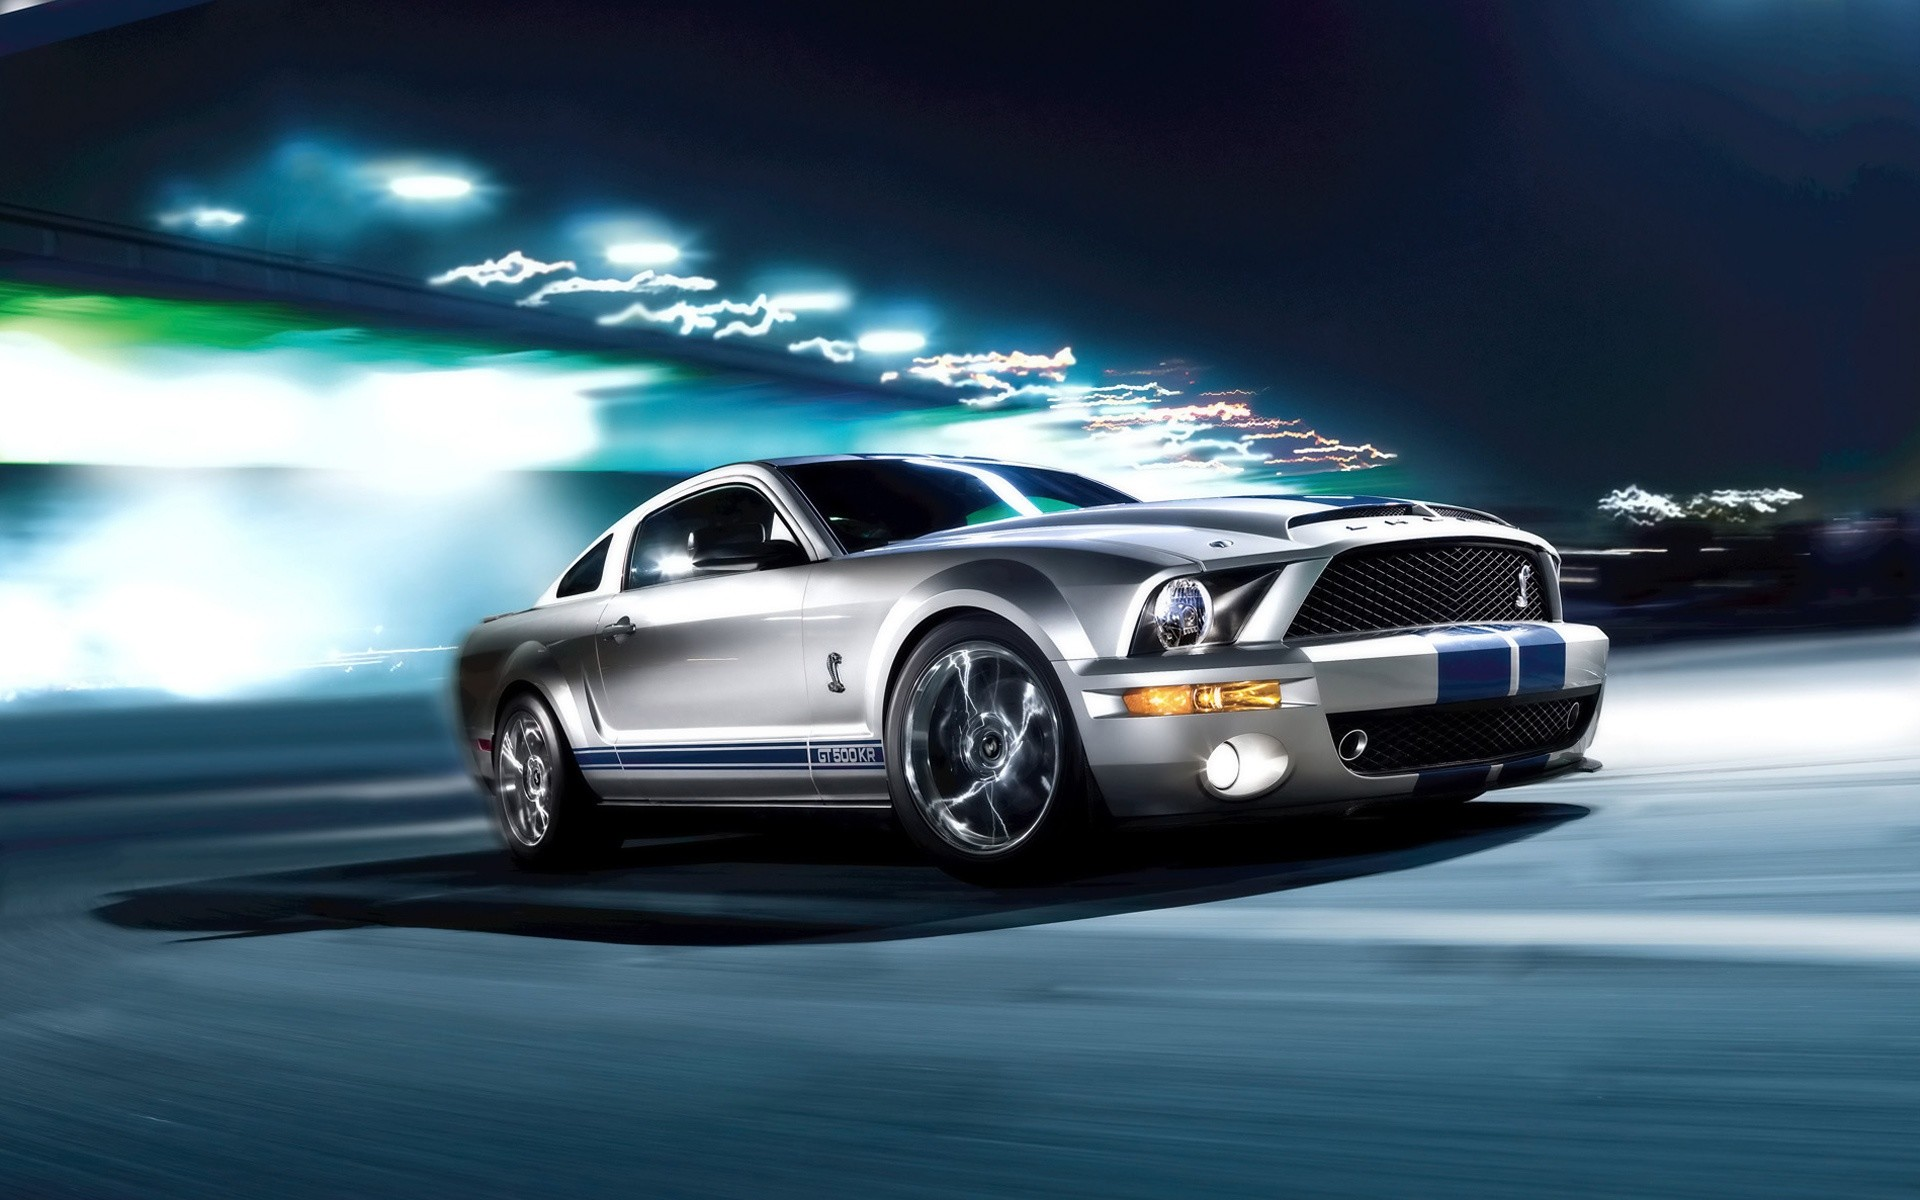 1920x1200 75 Ford Mustang Shelby GT500 HD Wallpapers | Backgrounds - Wallpaper Abyss